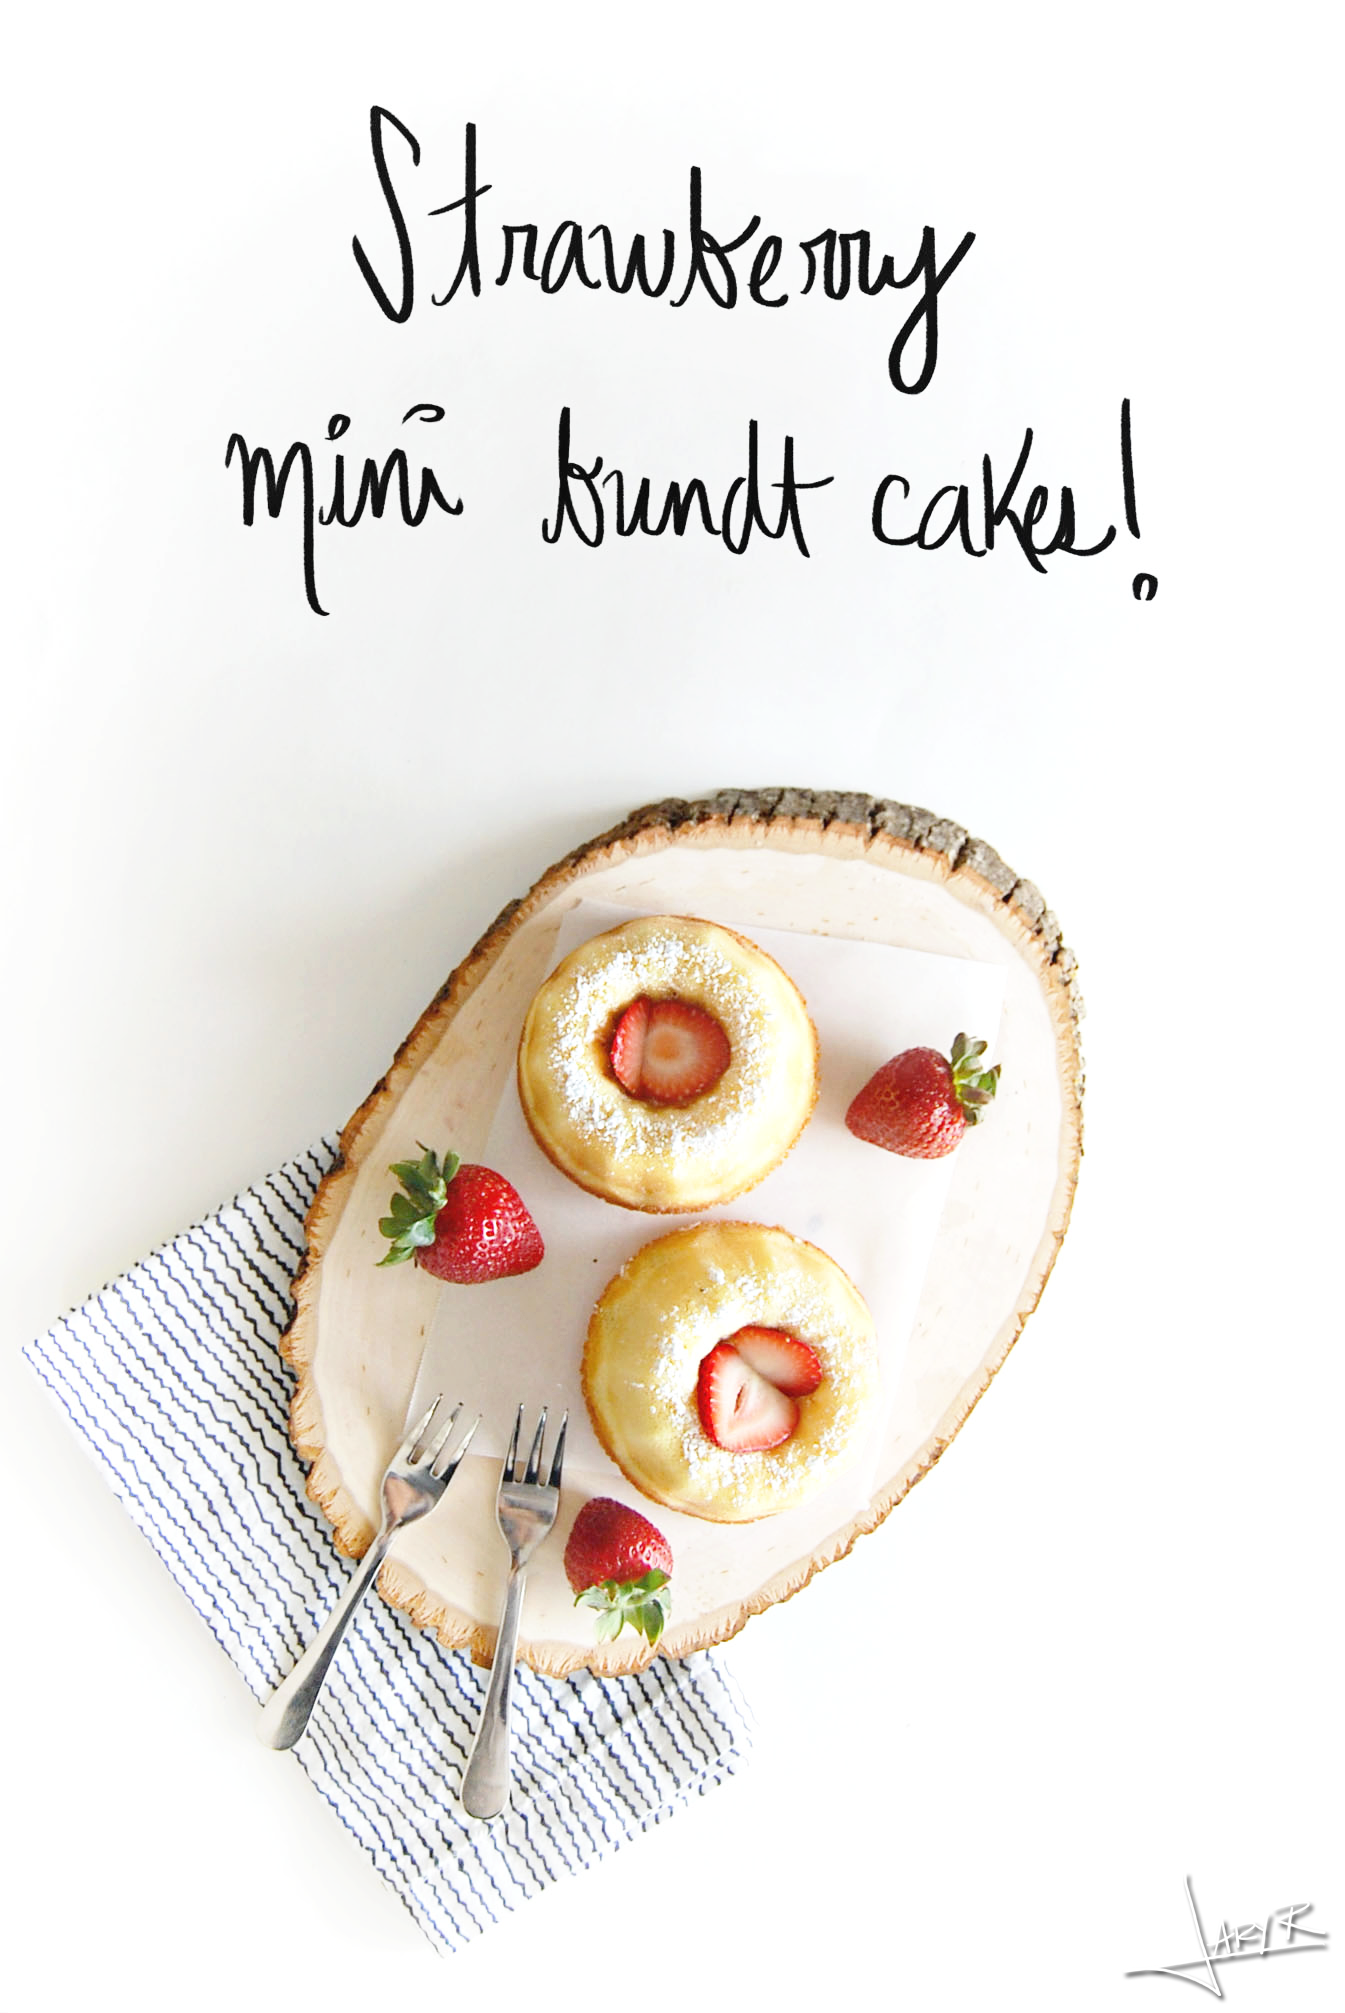 StrawberryMiniBundtCakes_6